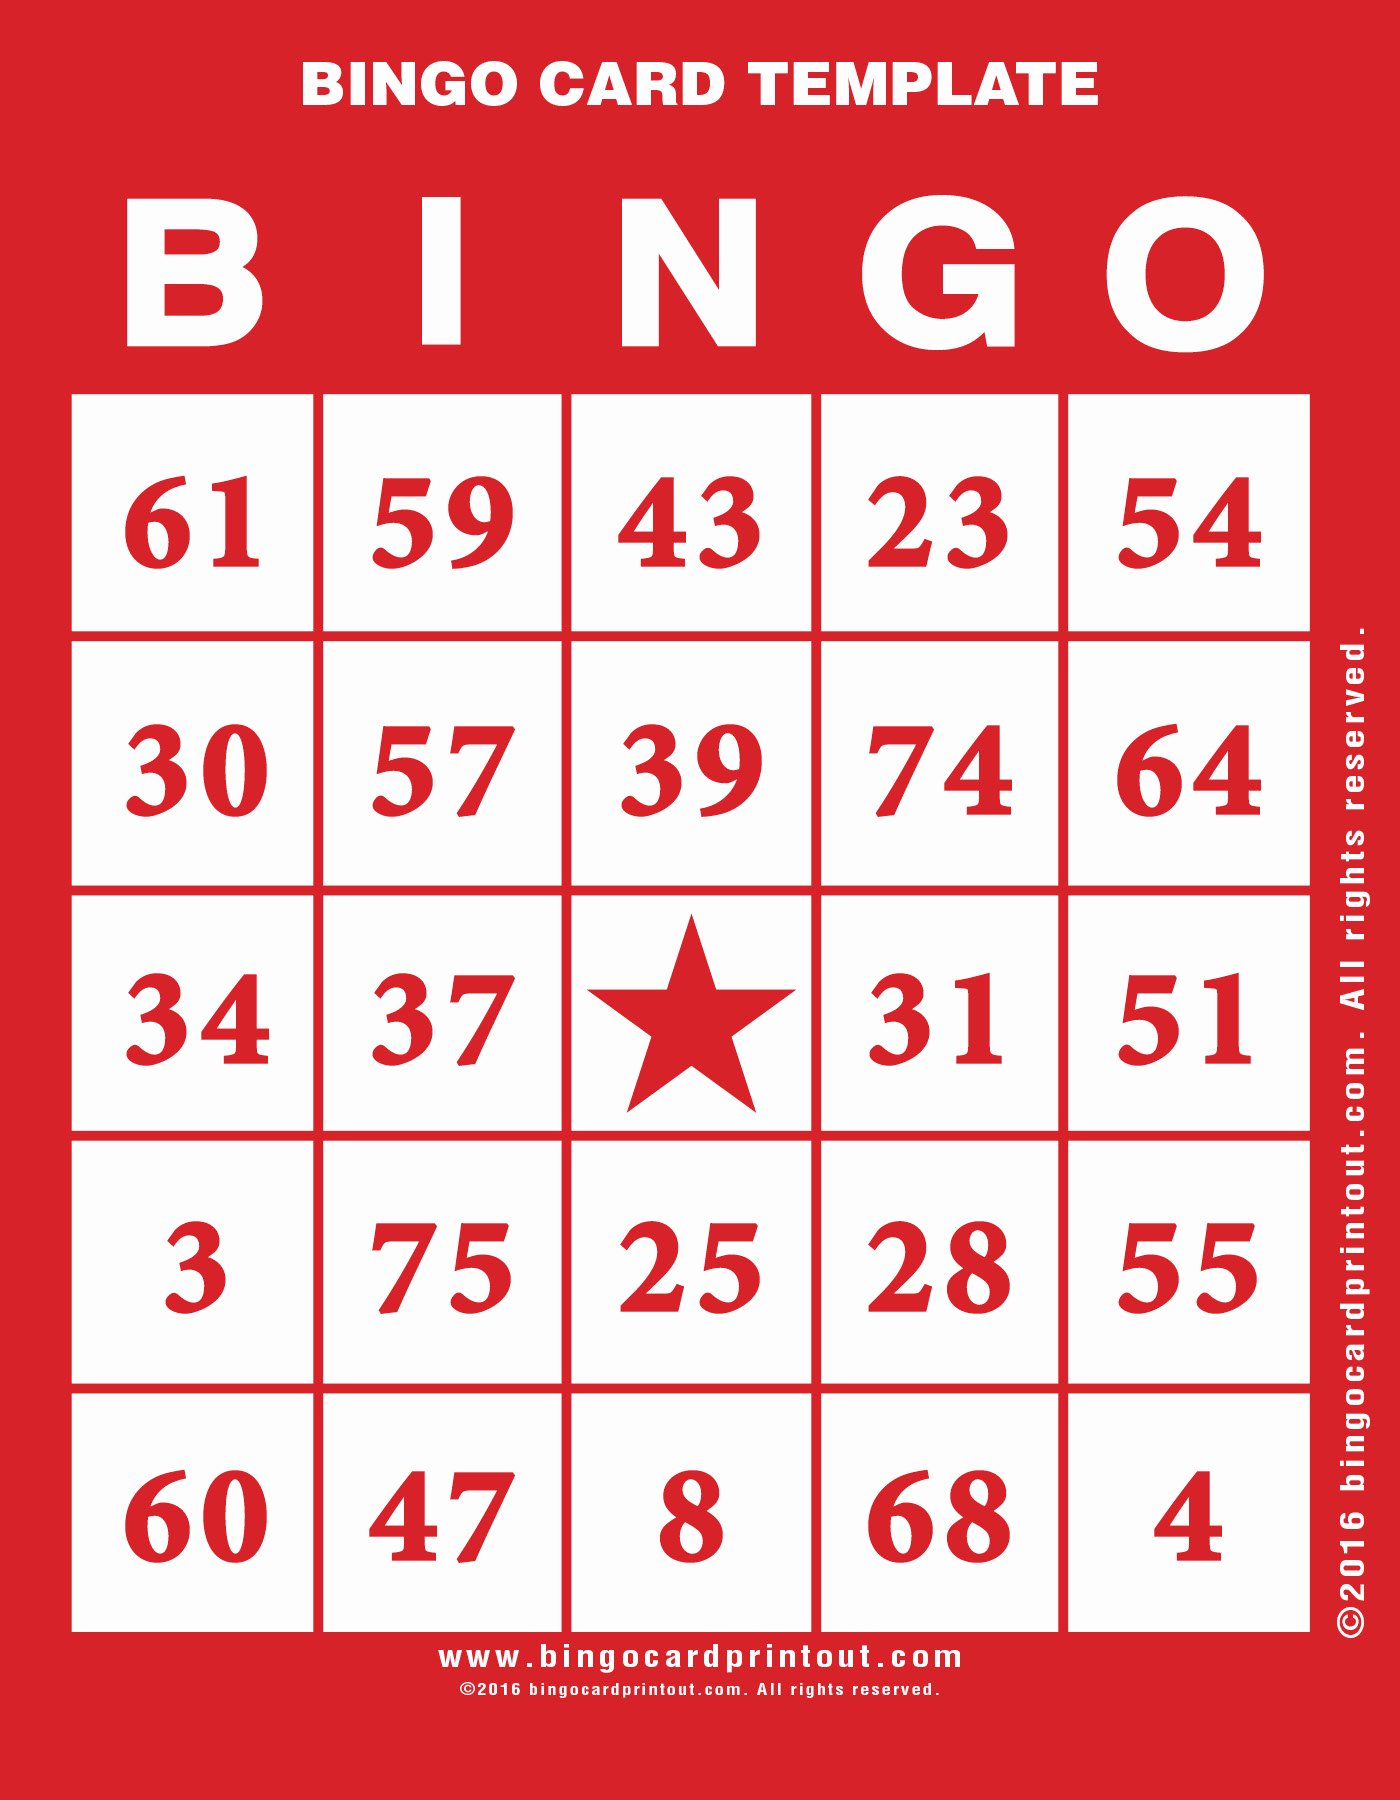 Bingo Card Template Bingocardprintout